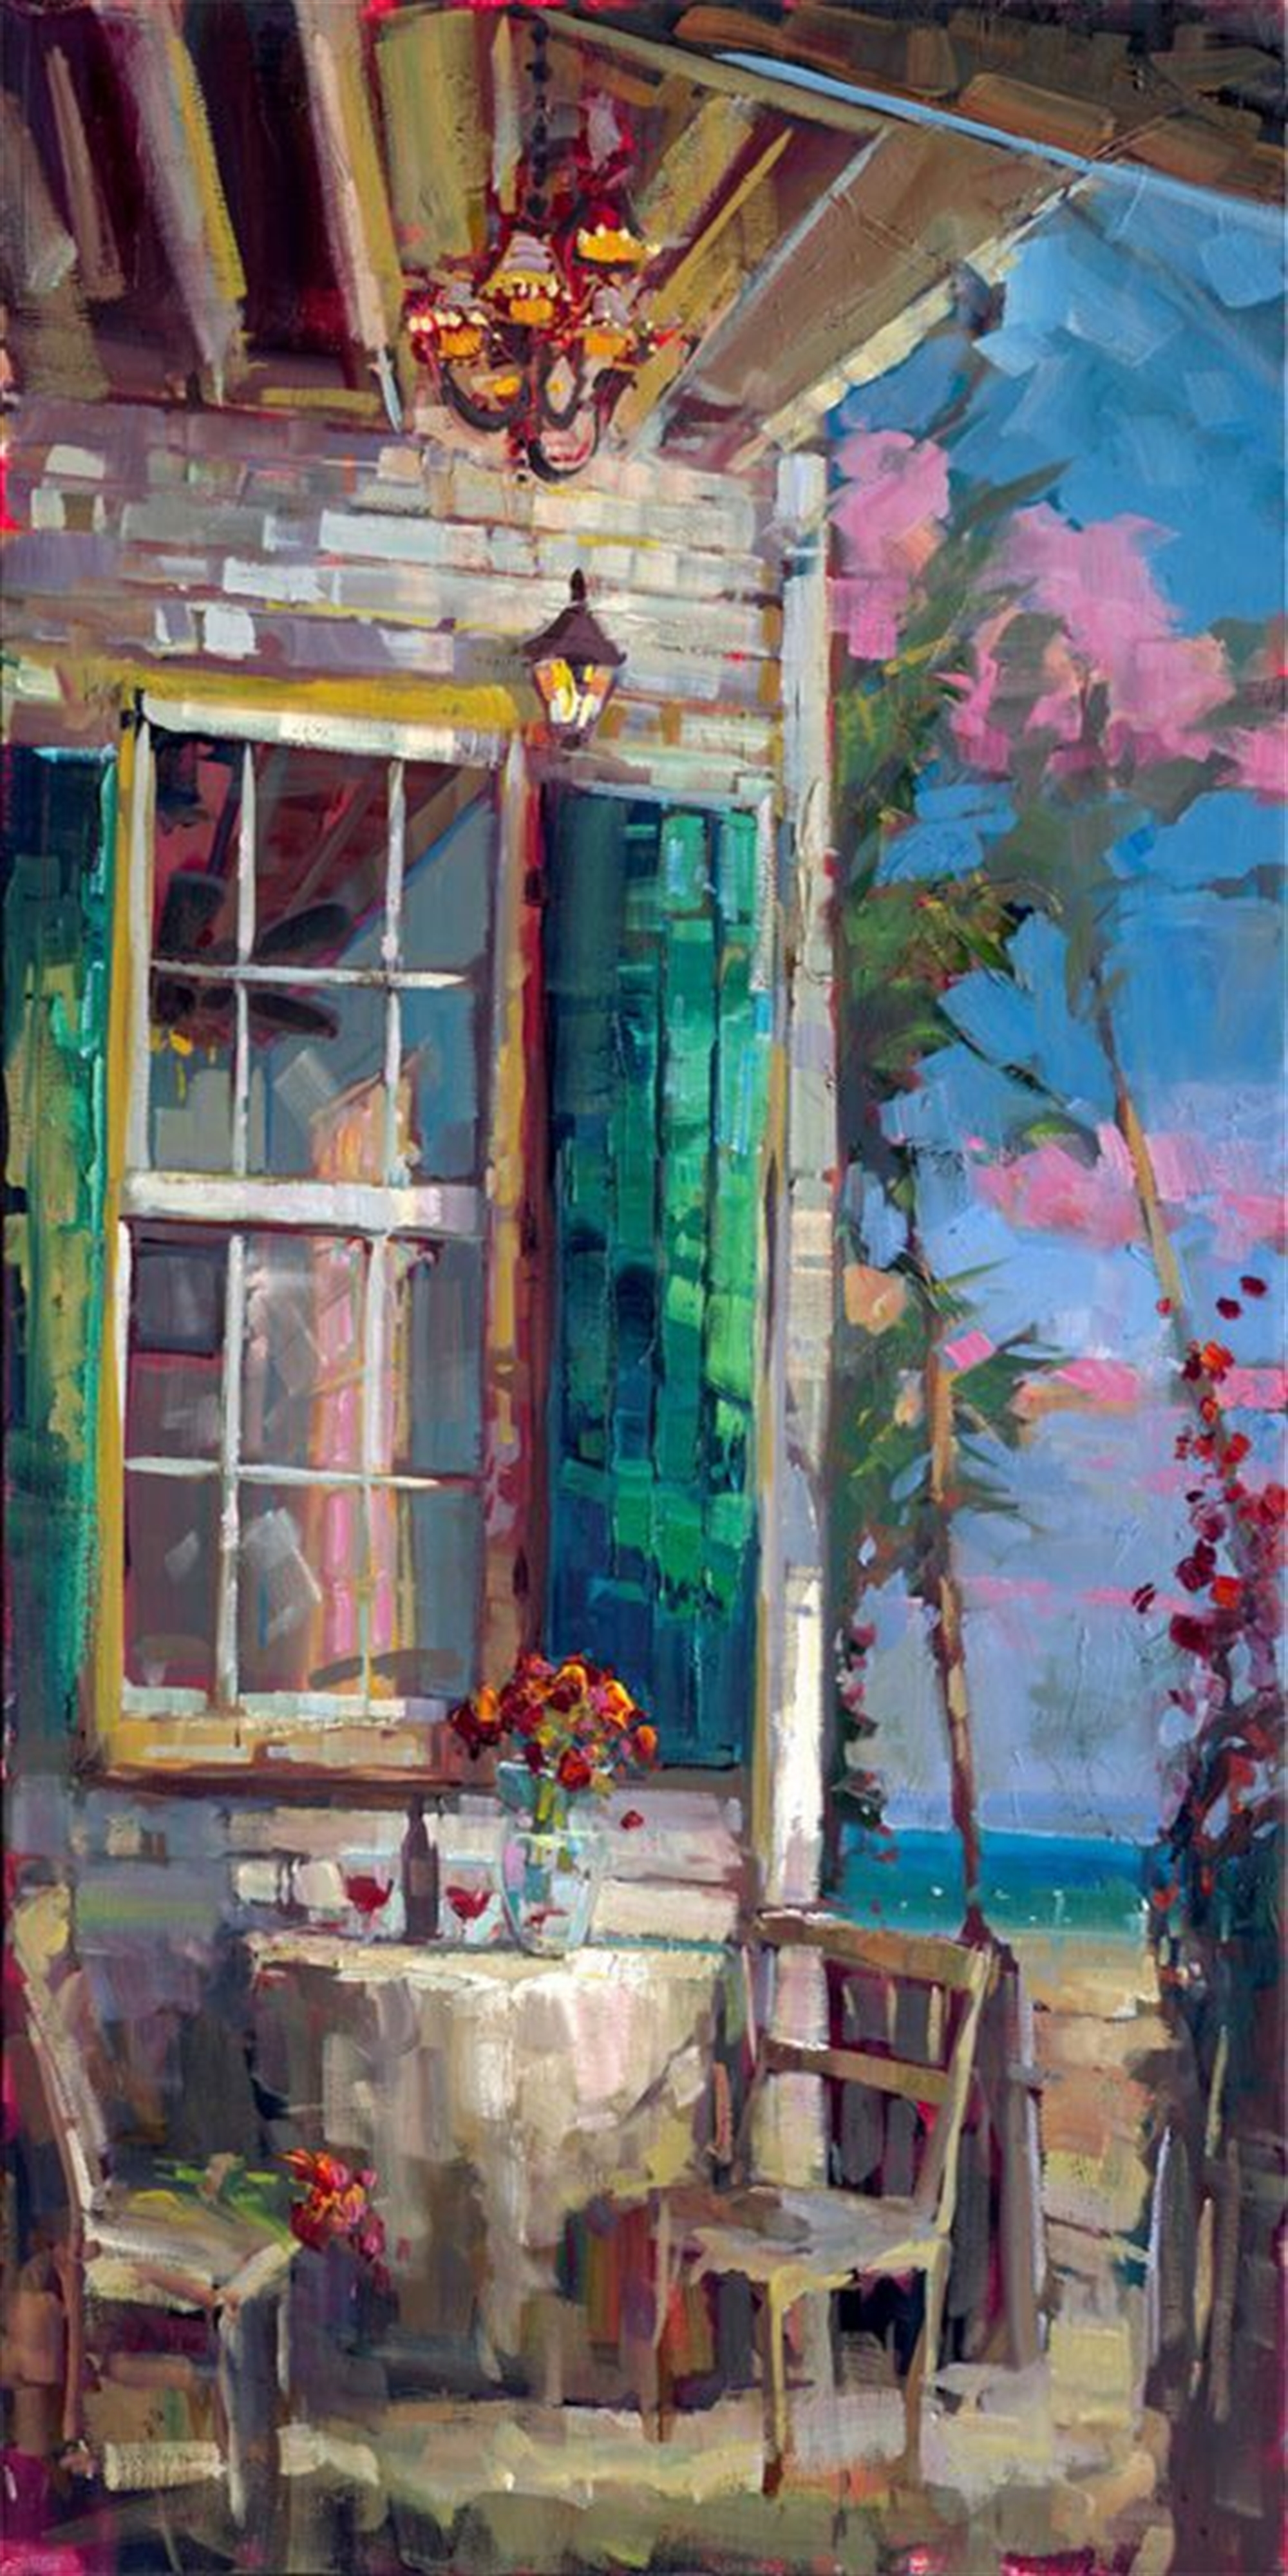 Dreaming of the Tropics by Steven Quartly